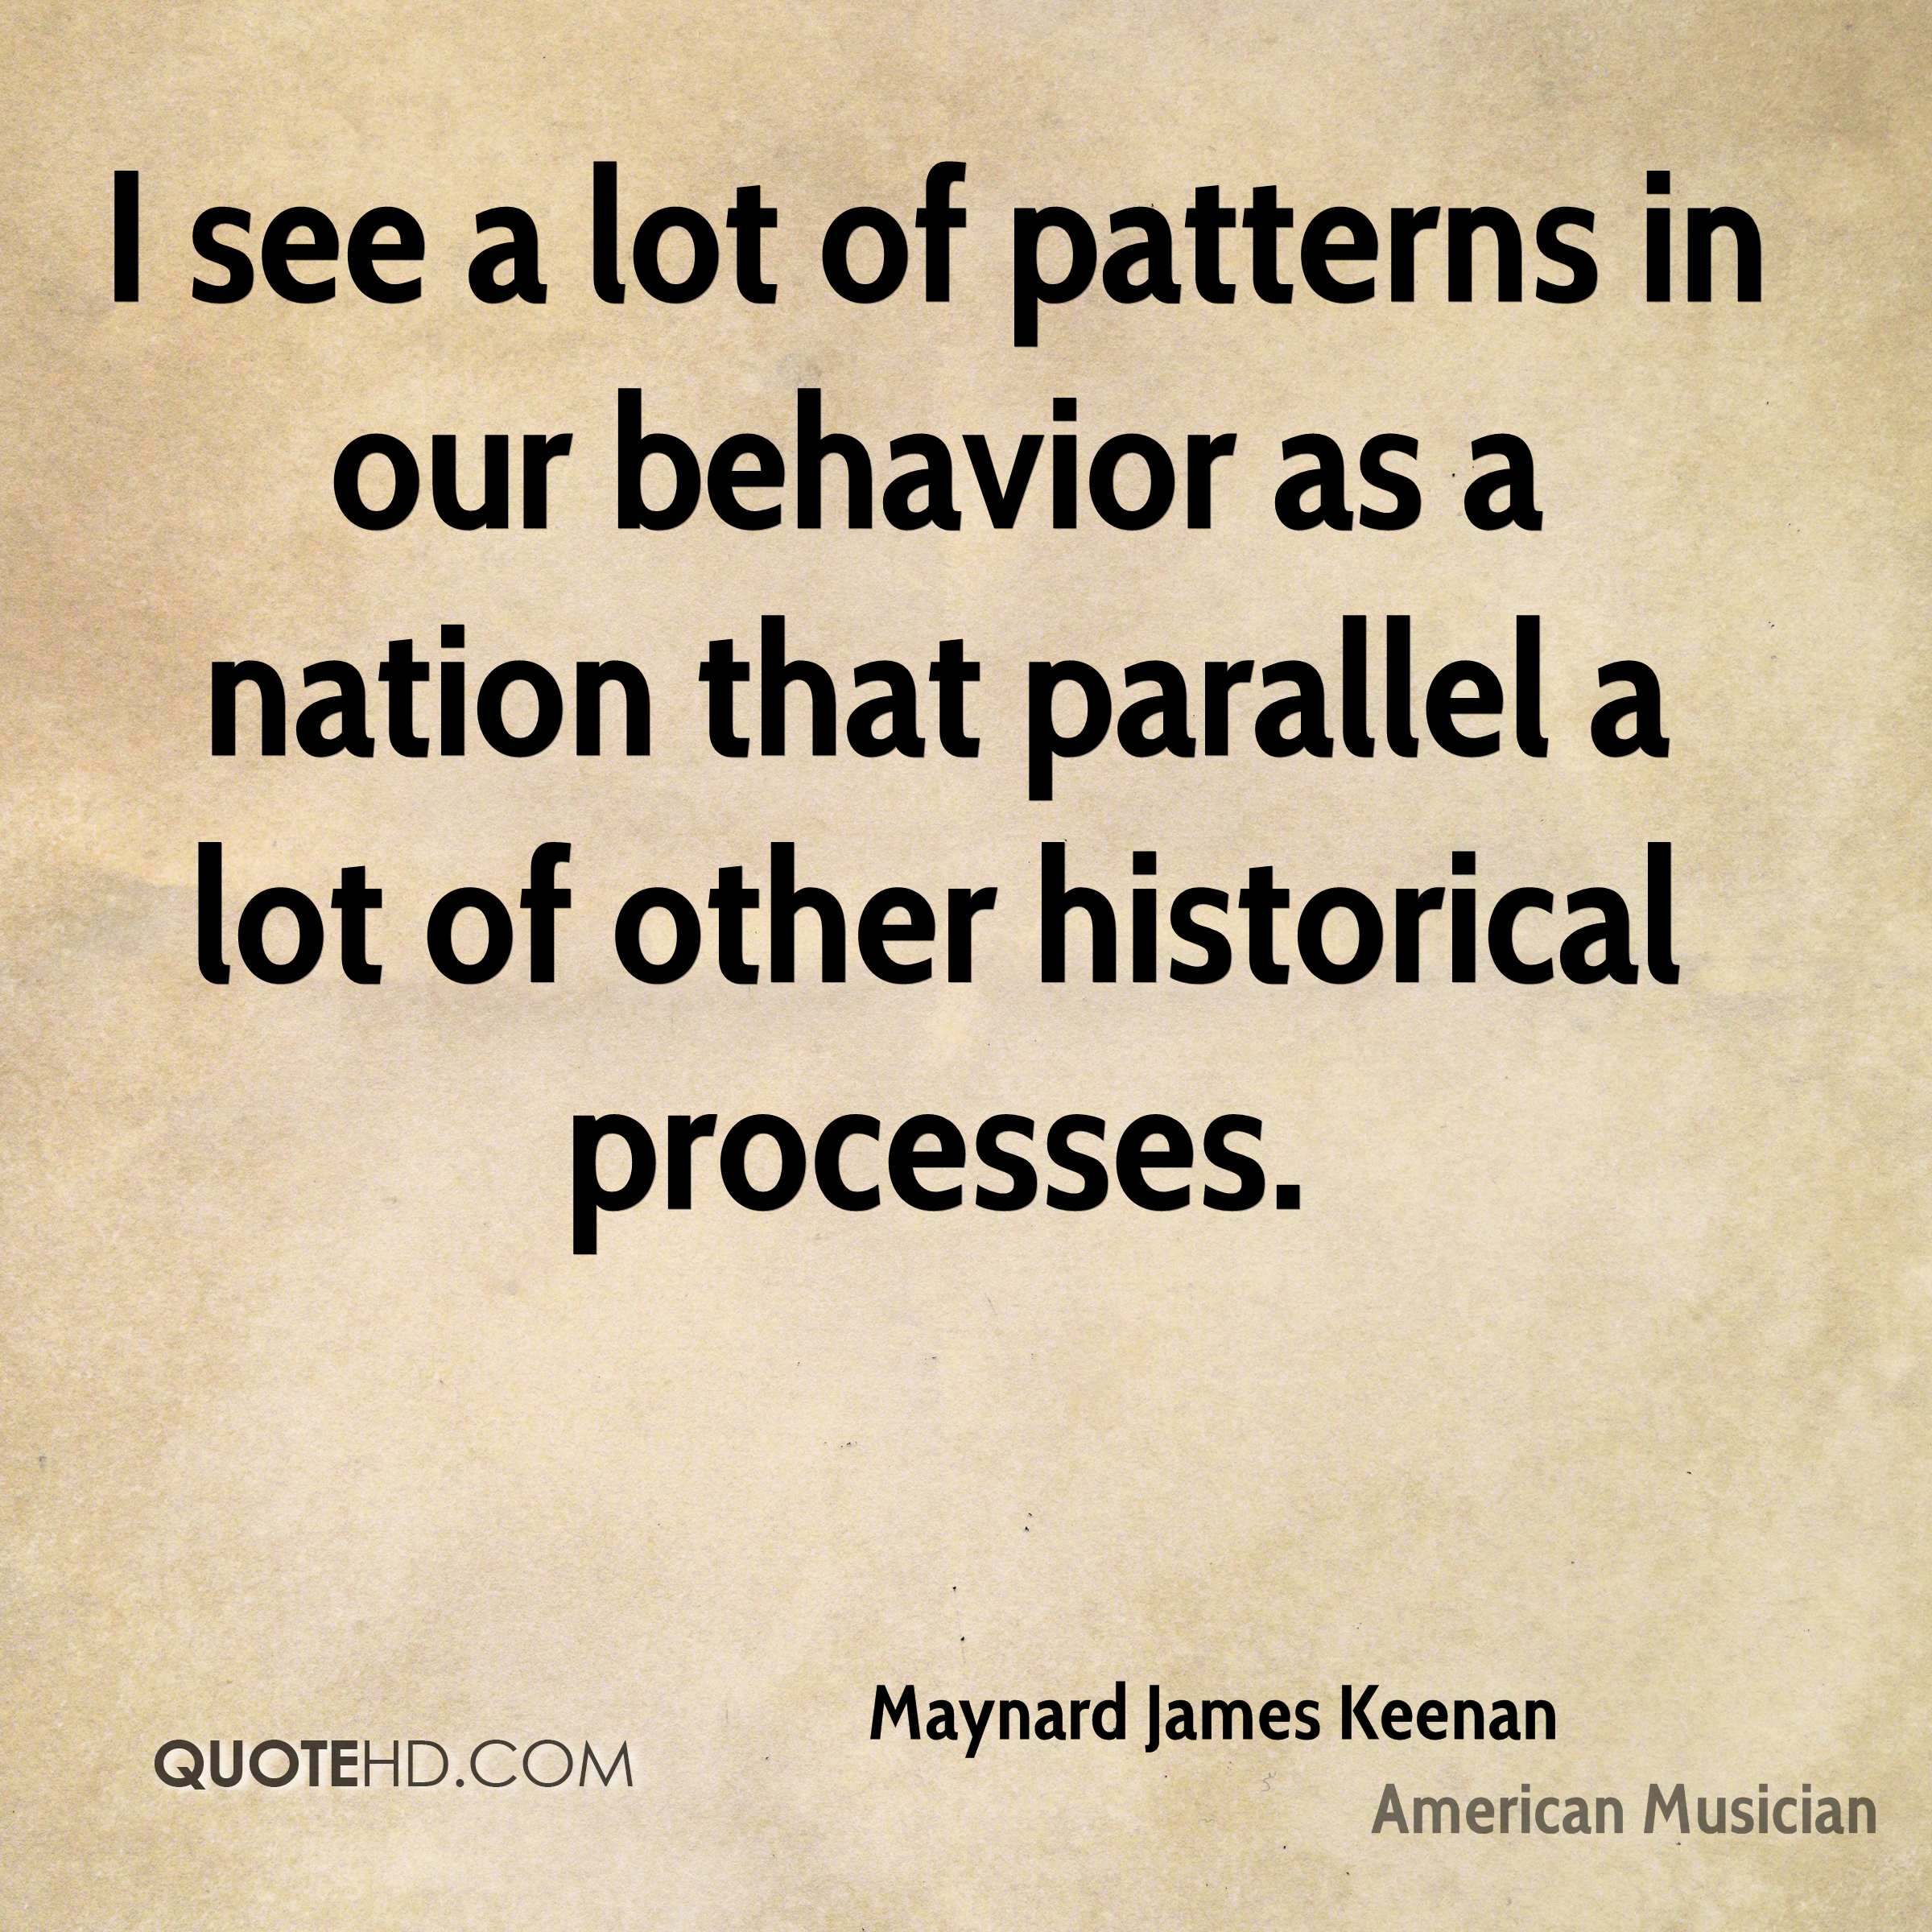 Quotes About Patterns Interesting Decorating Ideas